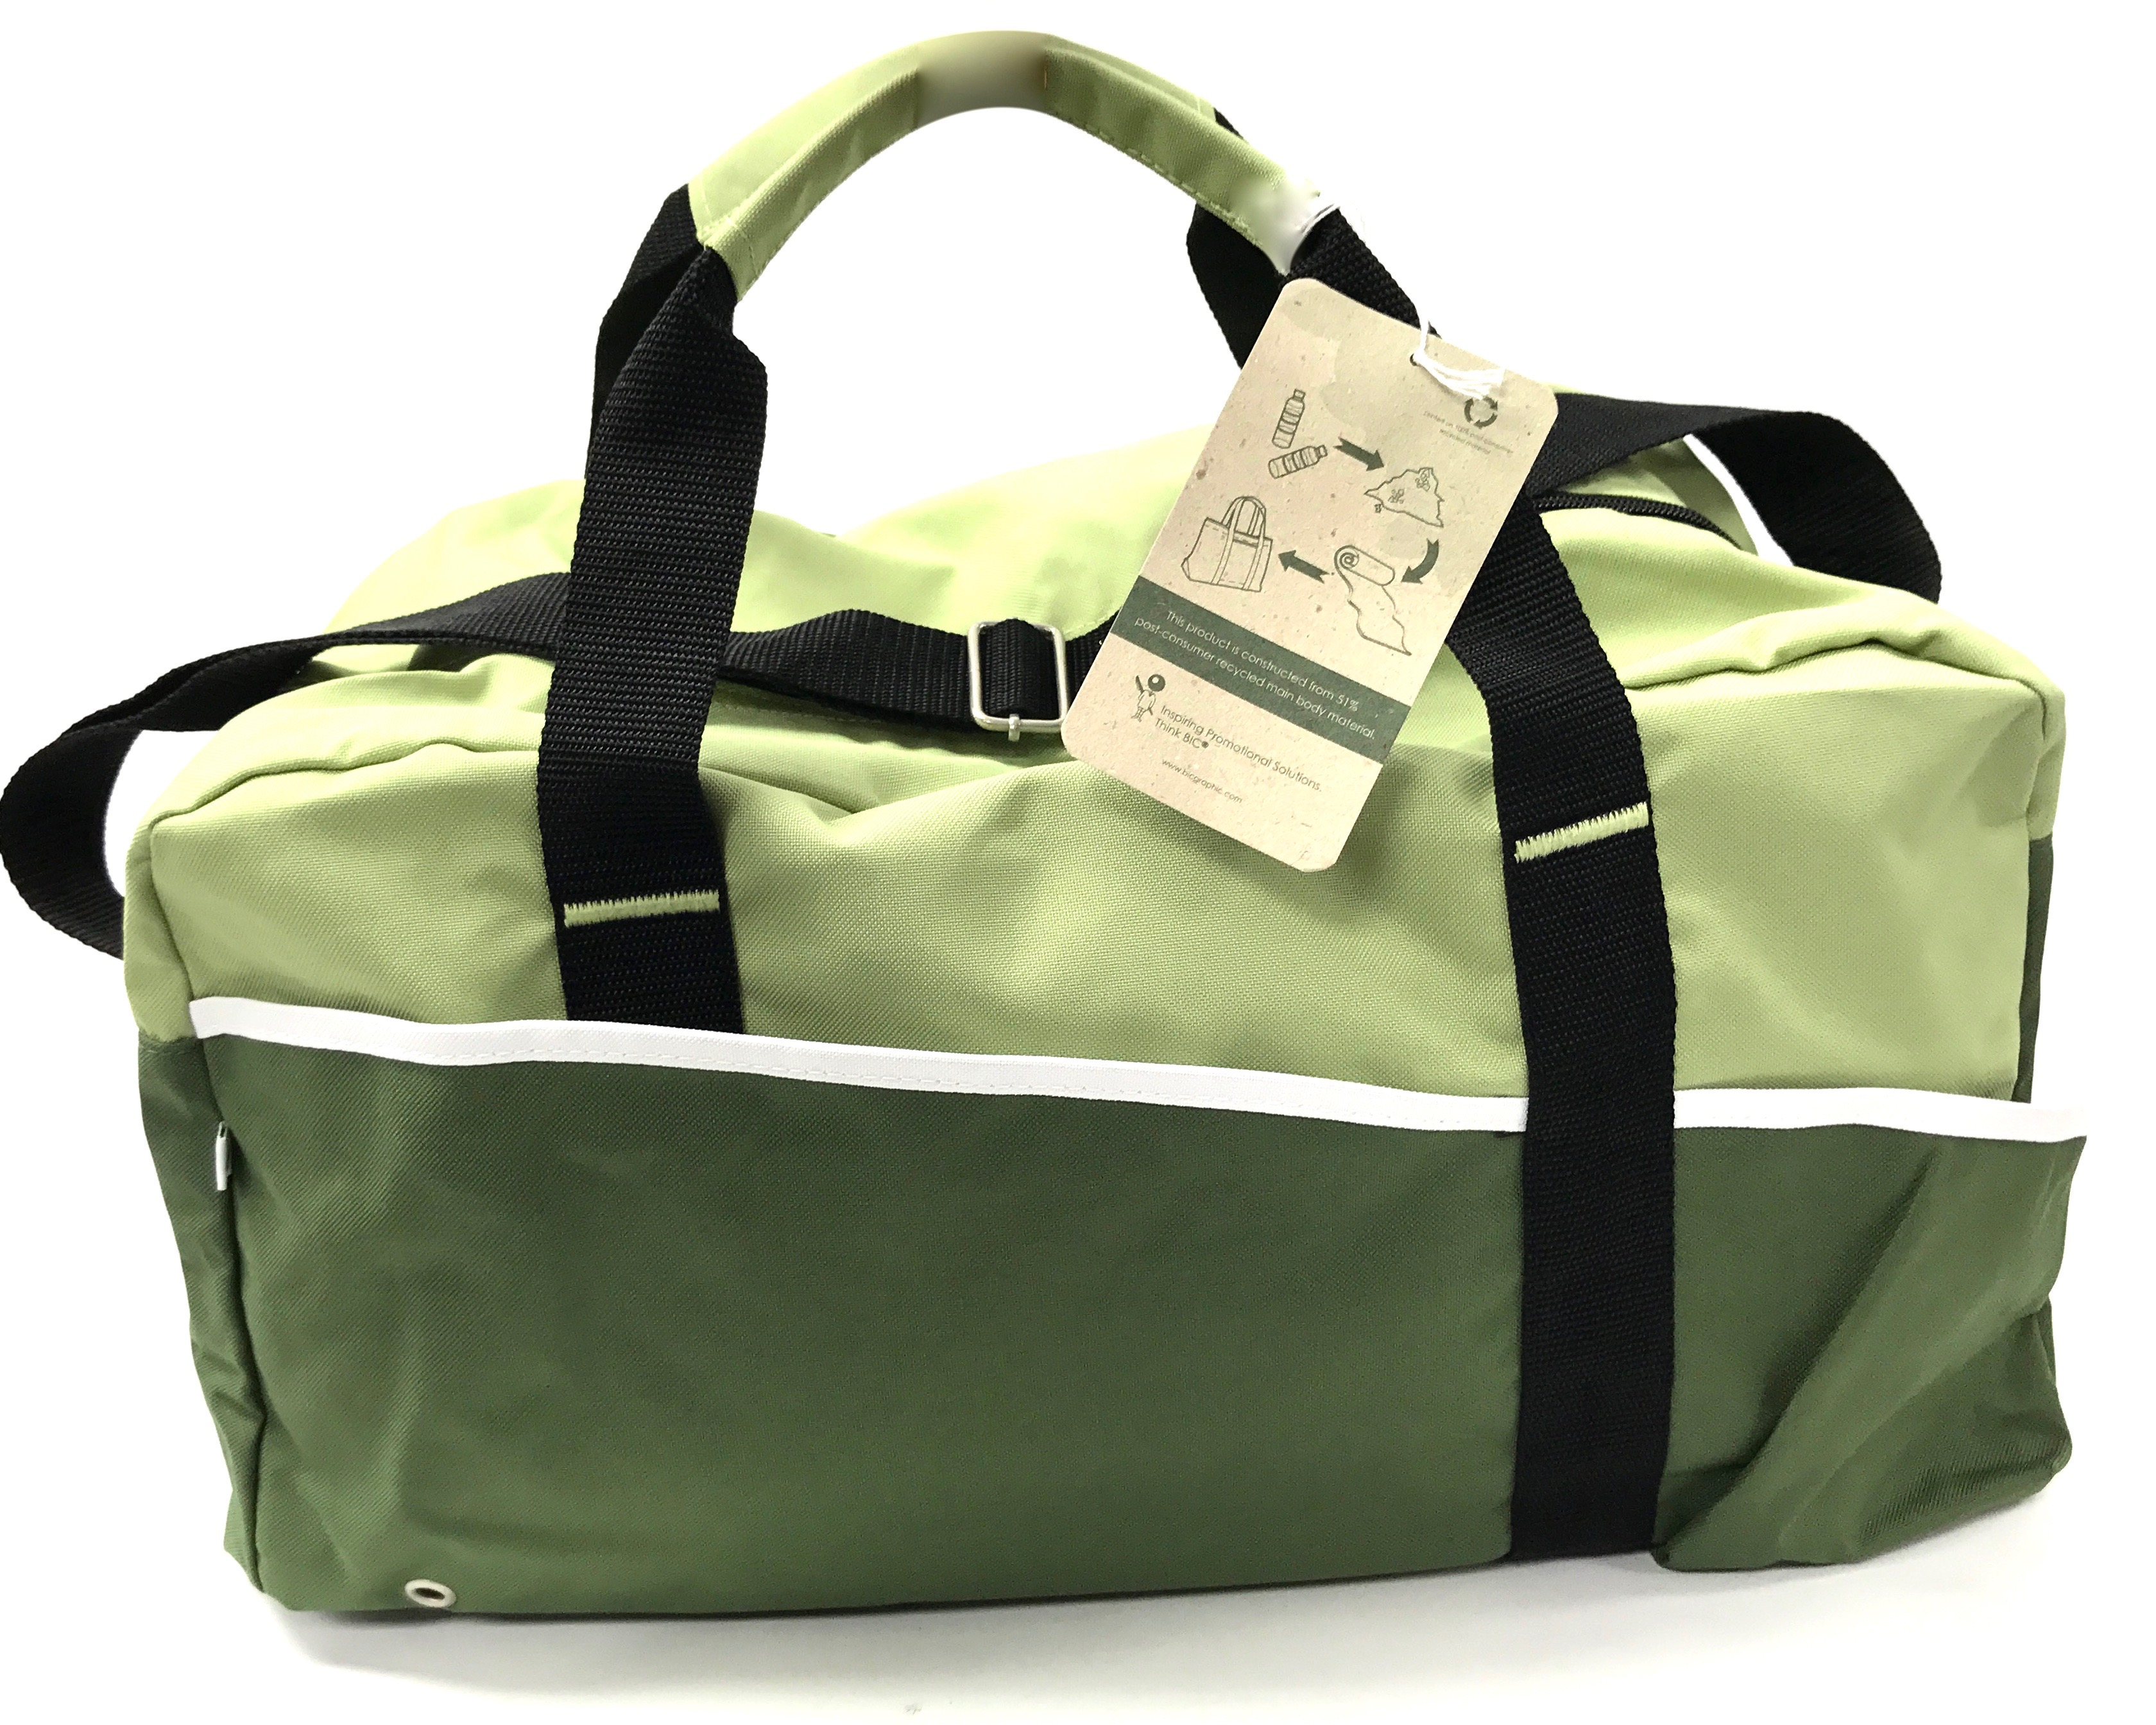 (0019627) (117534) Center Court Duffle - Grass